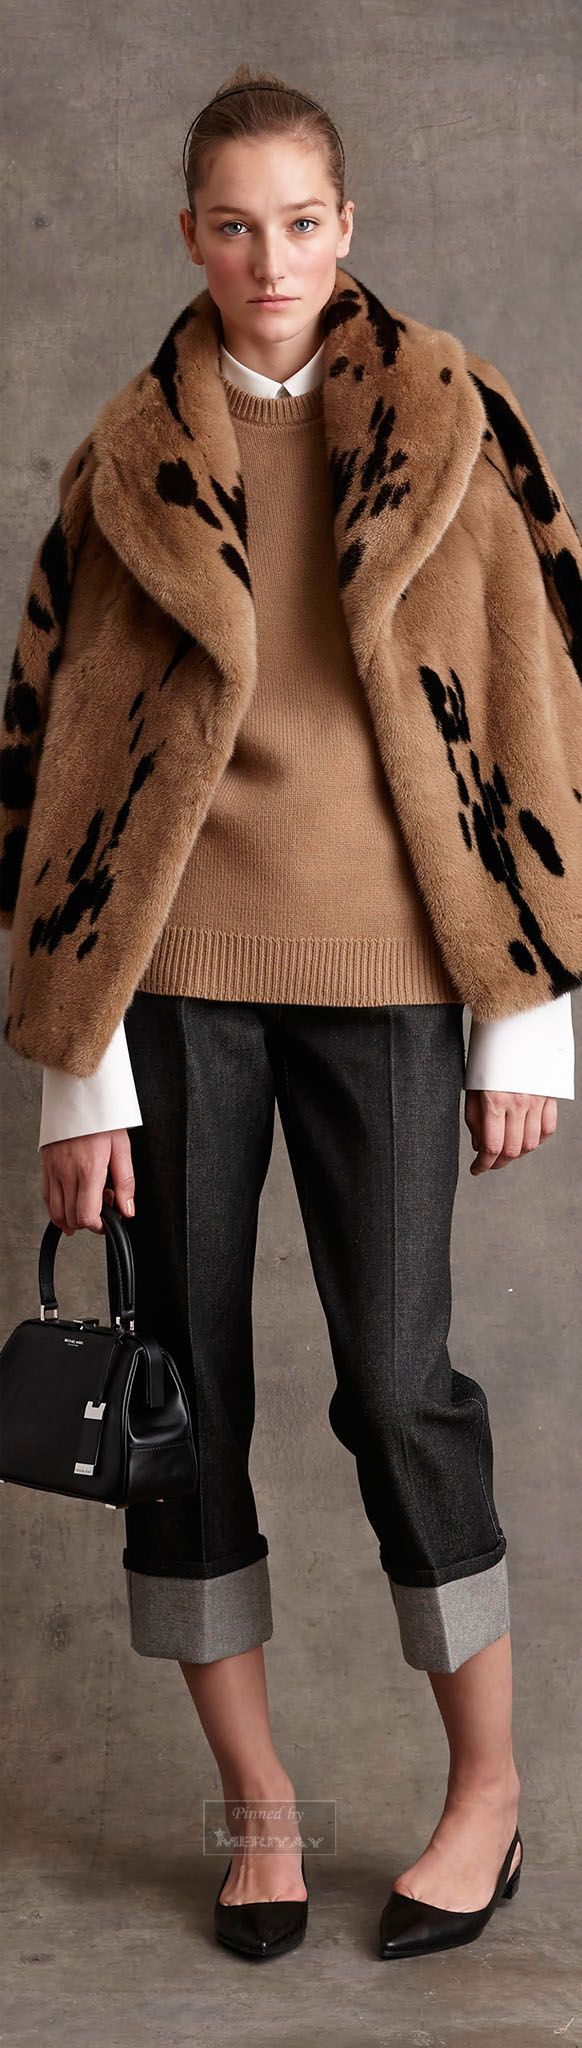 Michael Kors scored a home run with this outfit -  I would love to snuggle up in this fake fur.